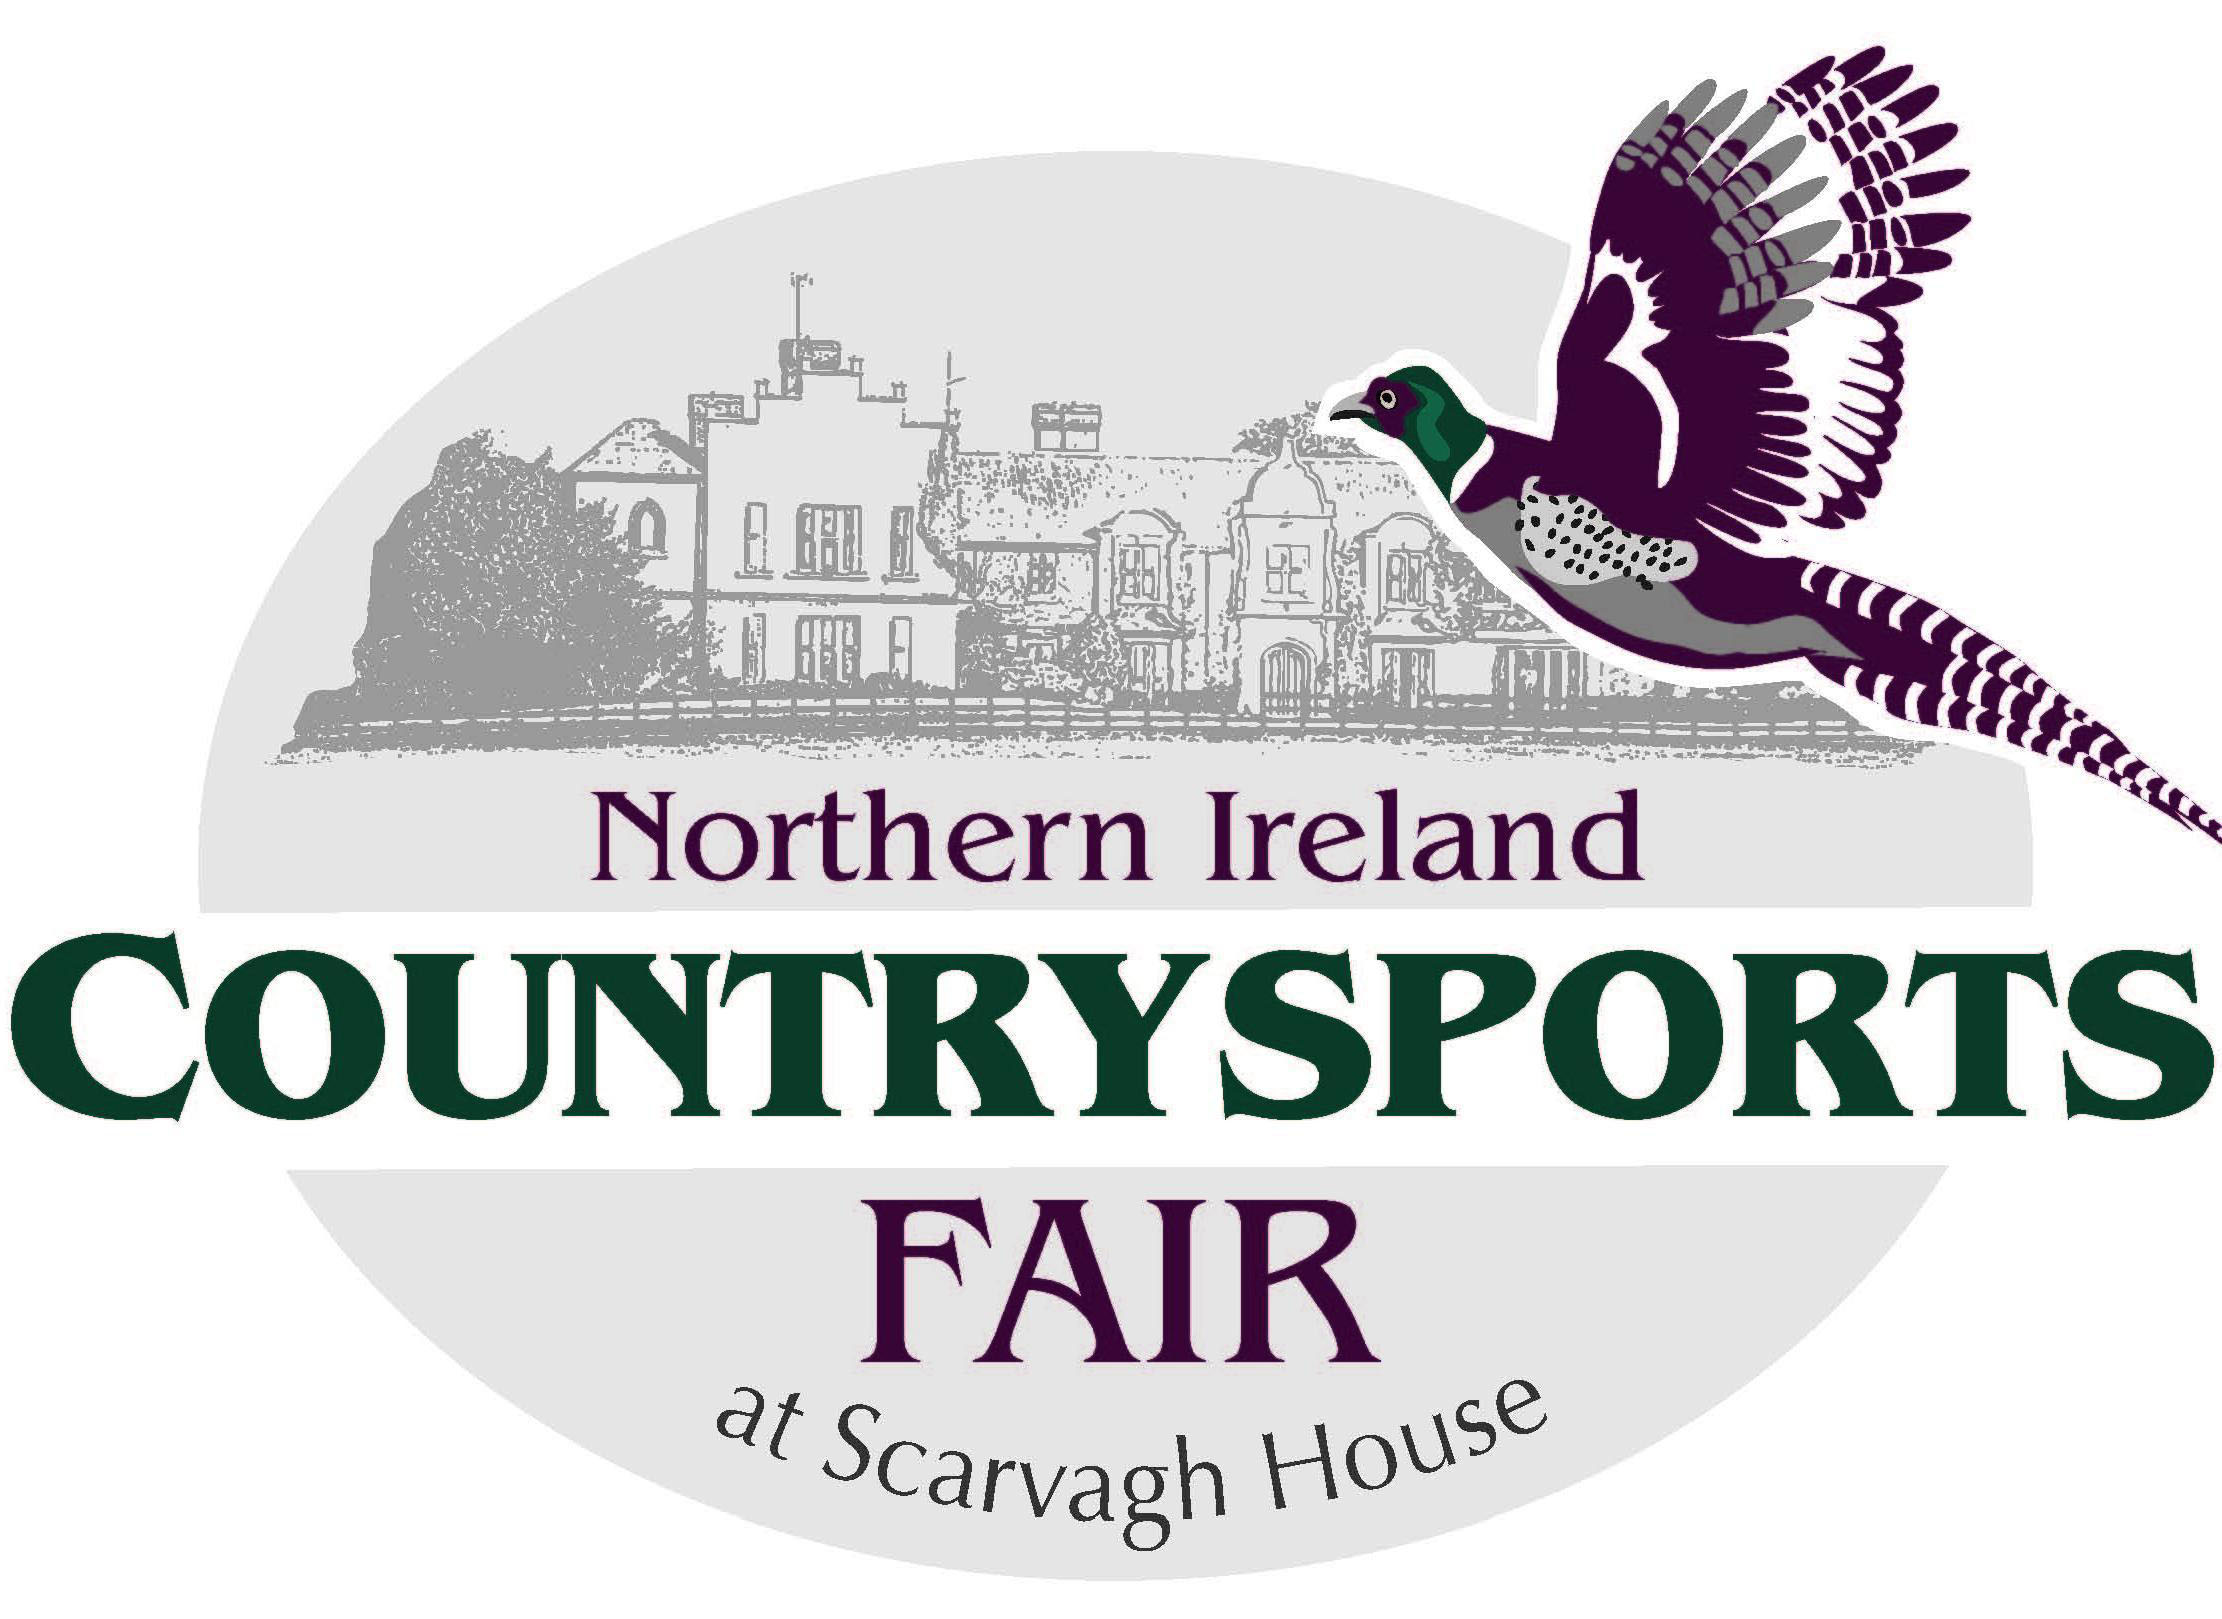 Outdoor Catering Servicce | Banbridge | Northern Ireland | Northern Ireland Country Sports Fair